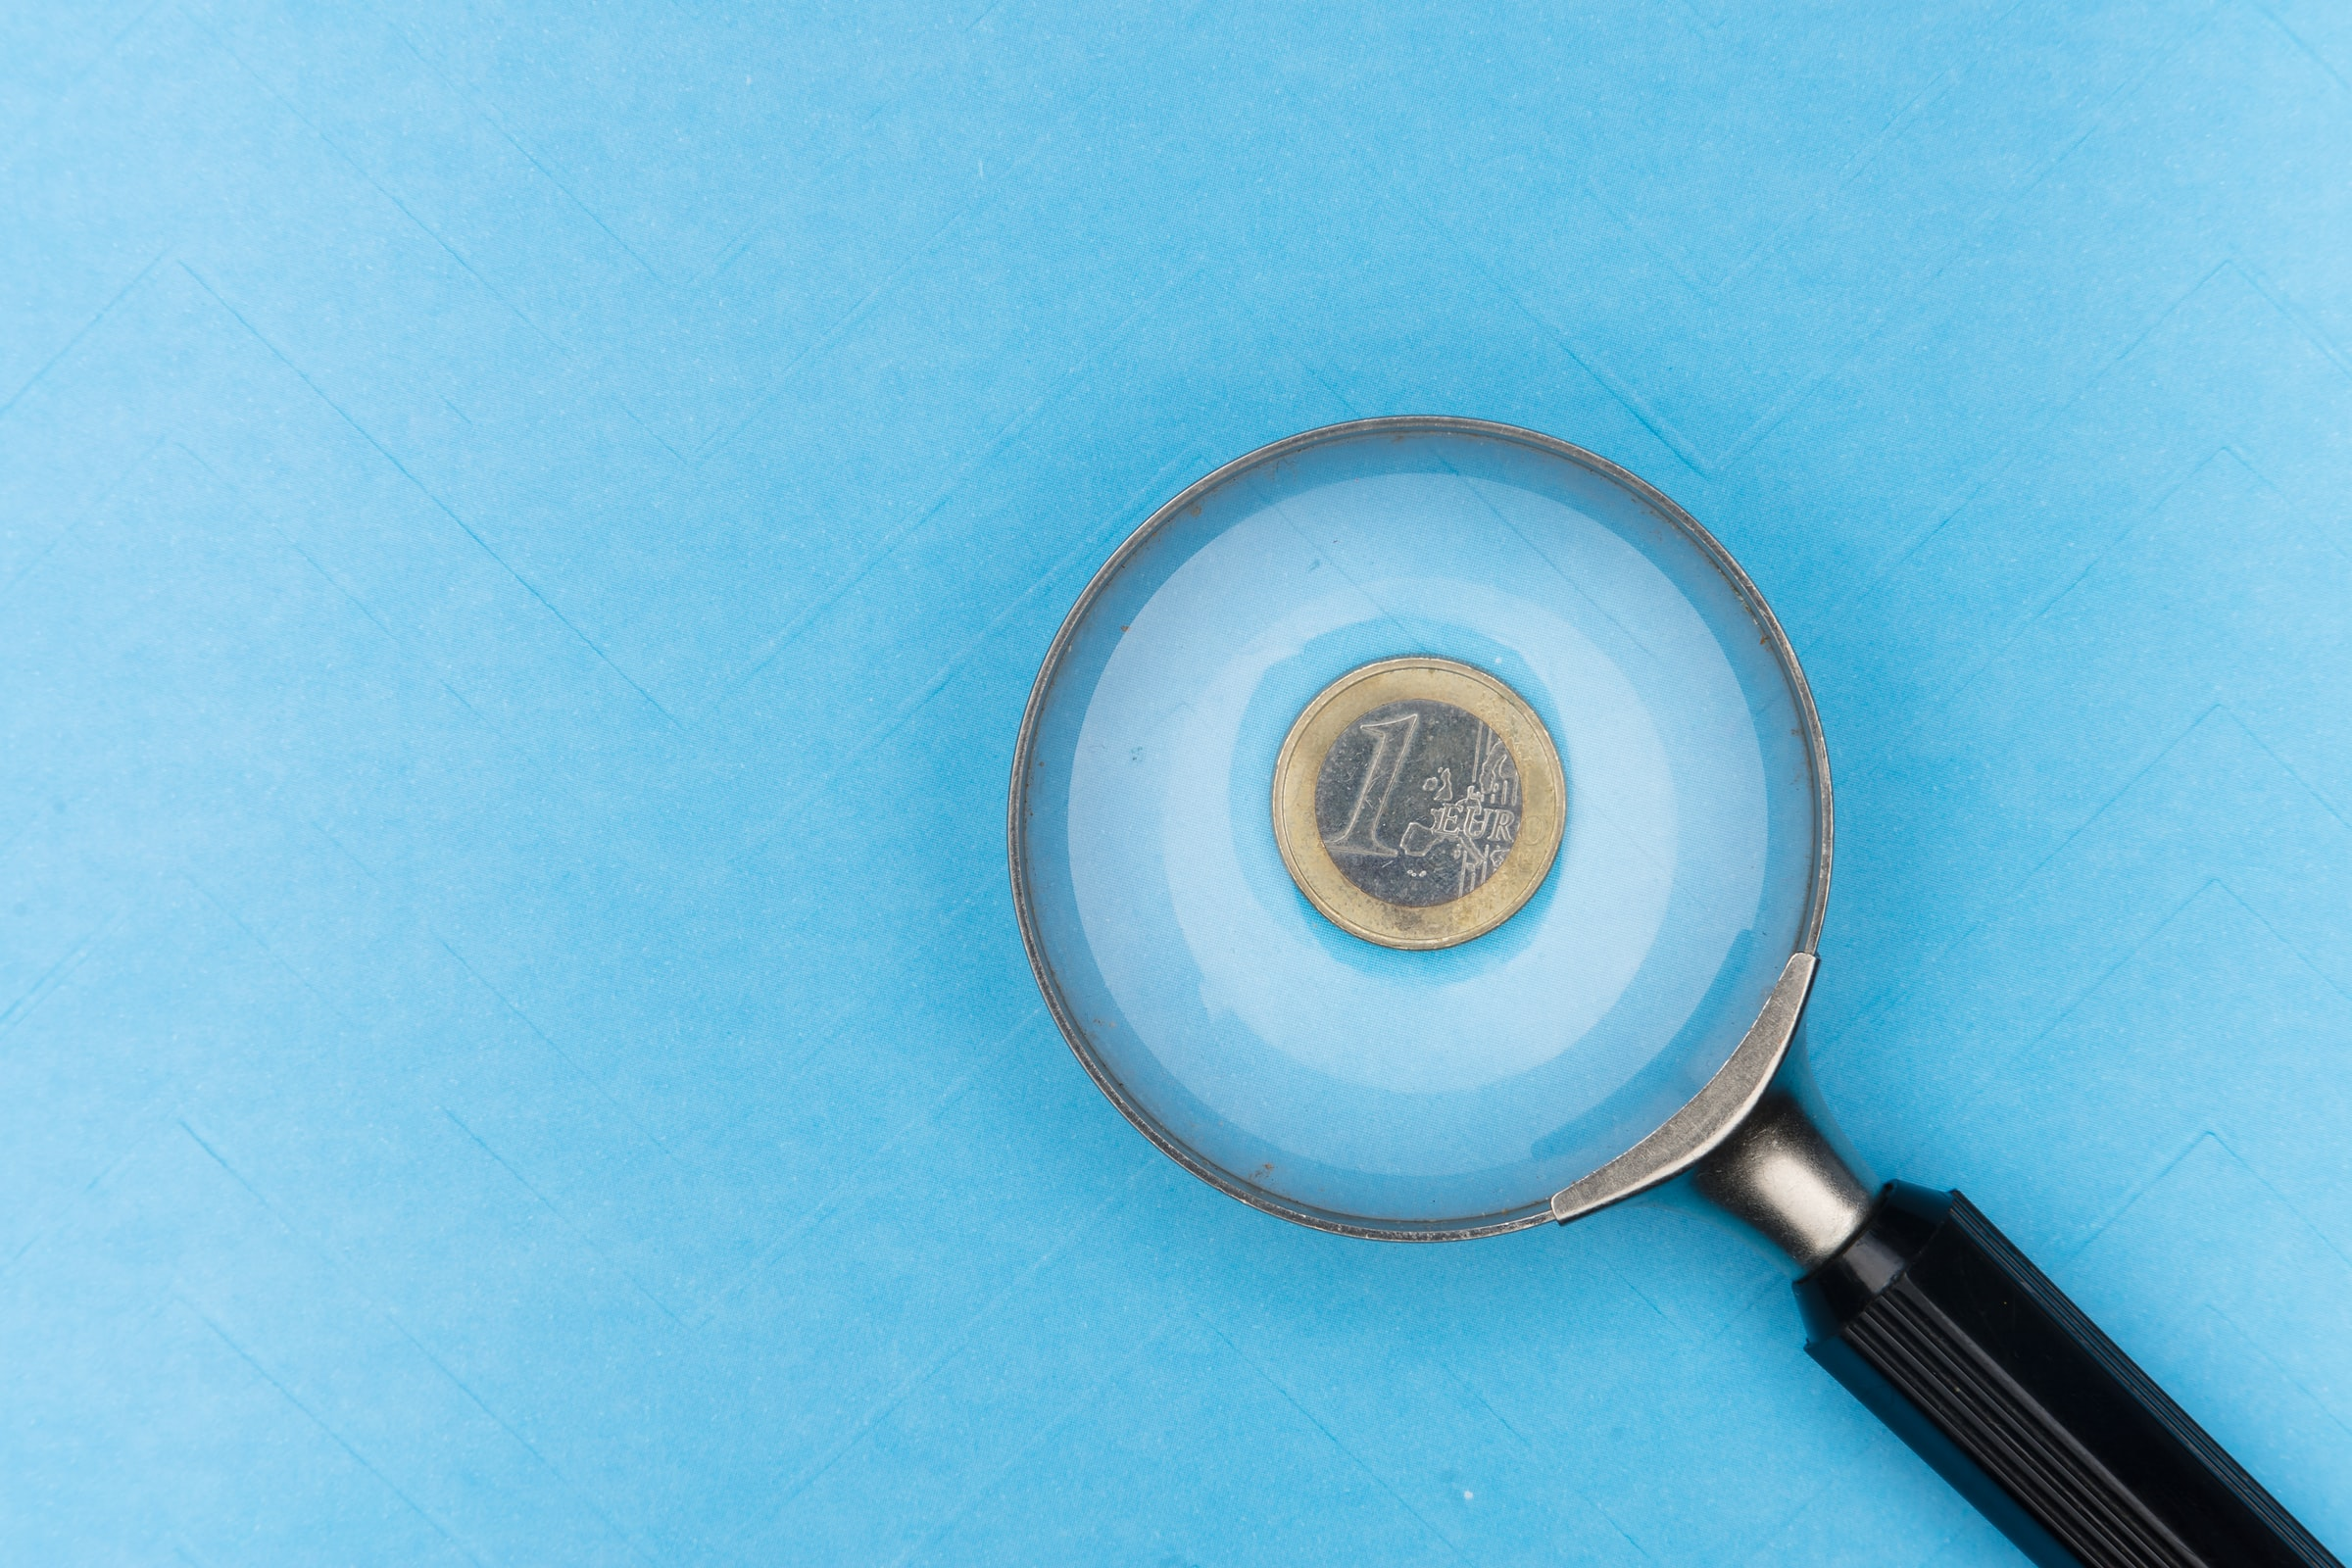 A magnifying glass over a coin